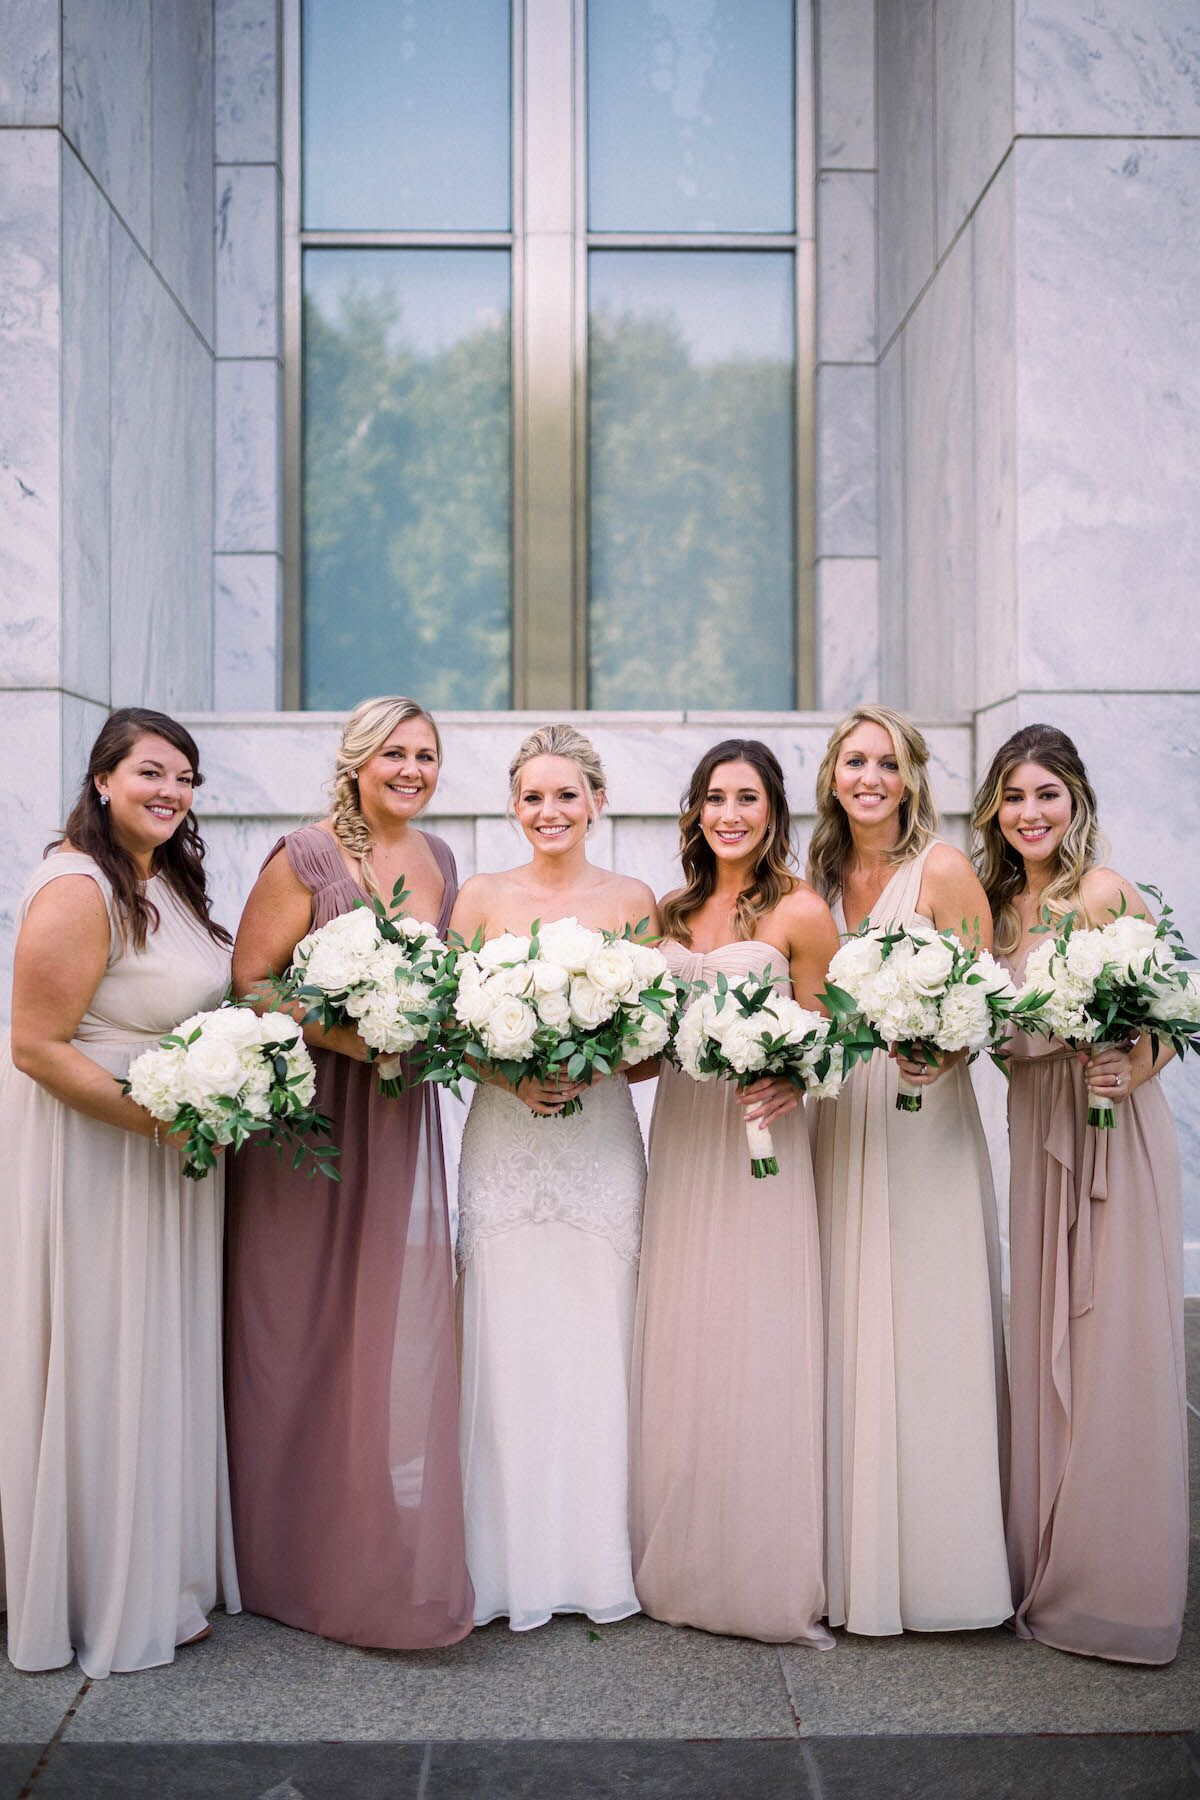 Shades Of Mauve Bridesmaid Dresses White Bridal Party Florals At The Peachtree Club In Atlan Mauve Bridesmaid Dress Mauve Bridesmaid Ombre Bridesmaid Dresses [ 1800 x 1200 Pixel ]